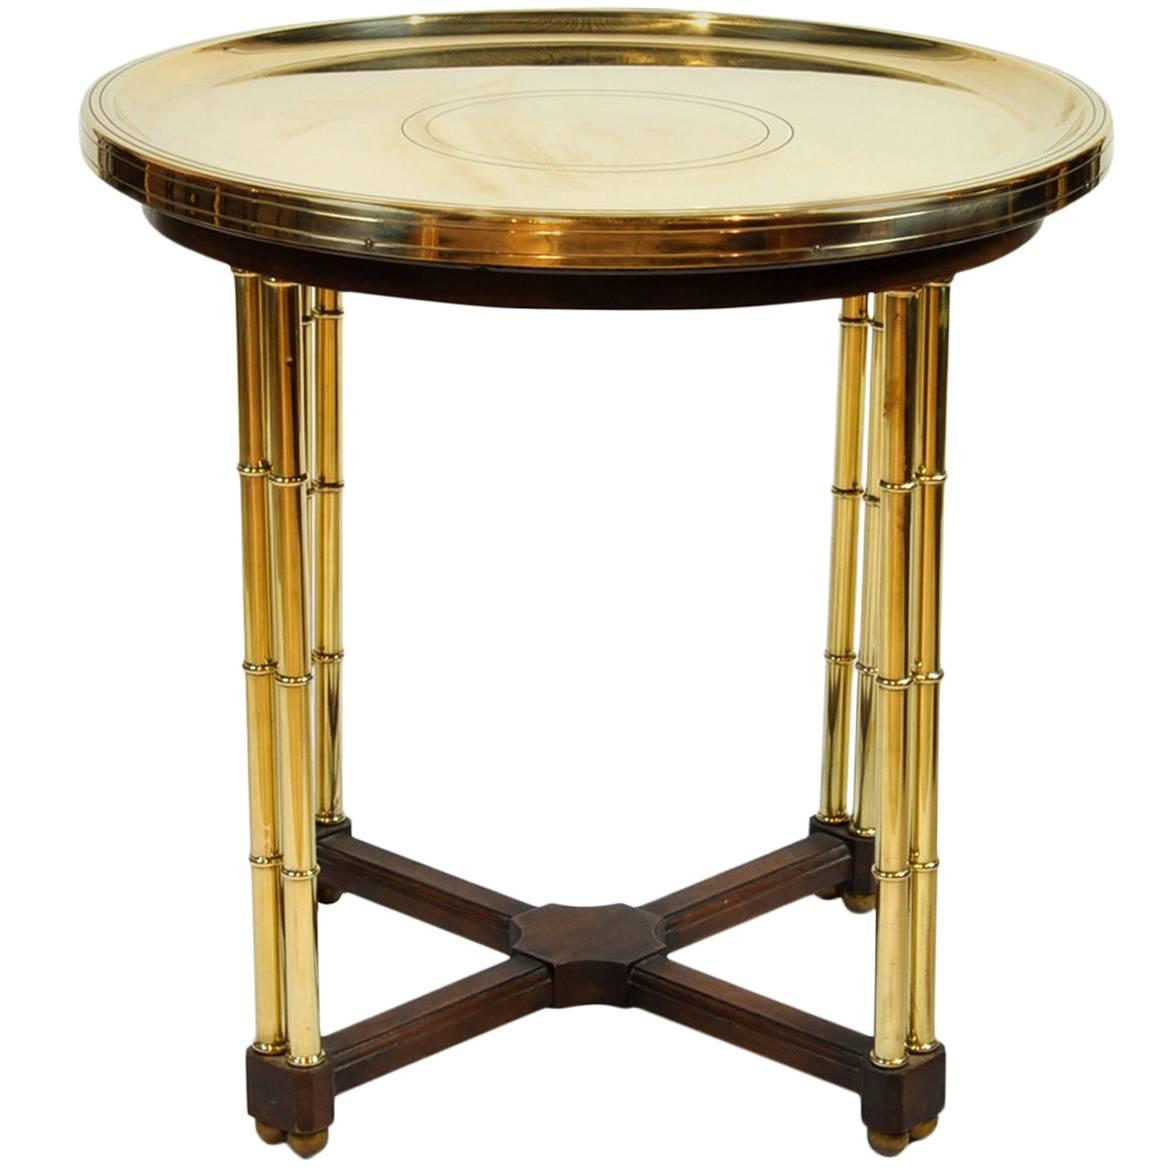 Vintage Brass Dish Top End Table With Faux Bamboo Legs At 1stdibs